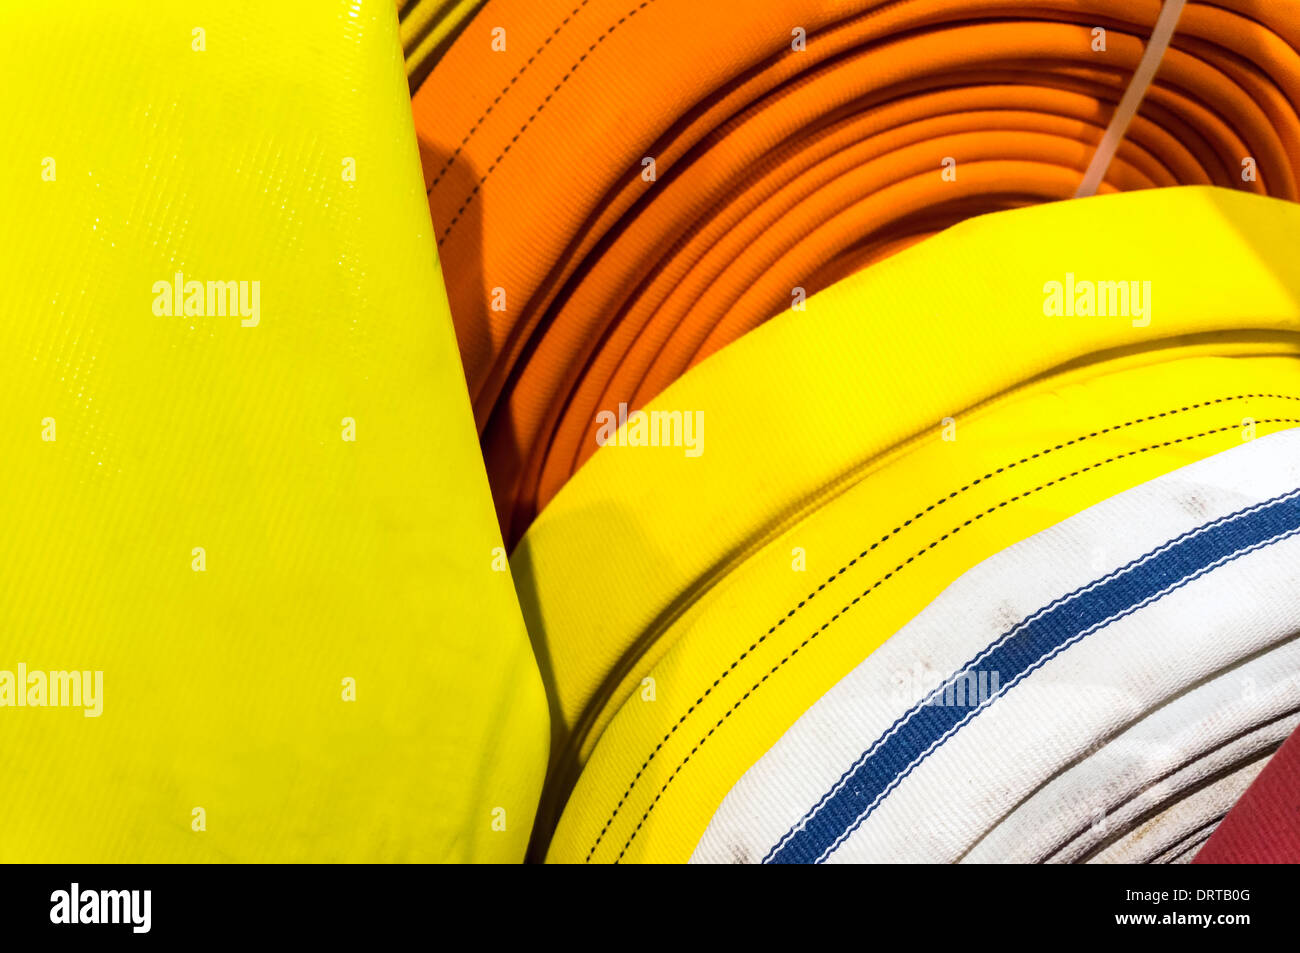 Coiled fire hoses display at trade show. - Stock Image